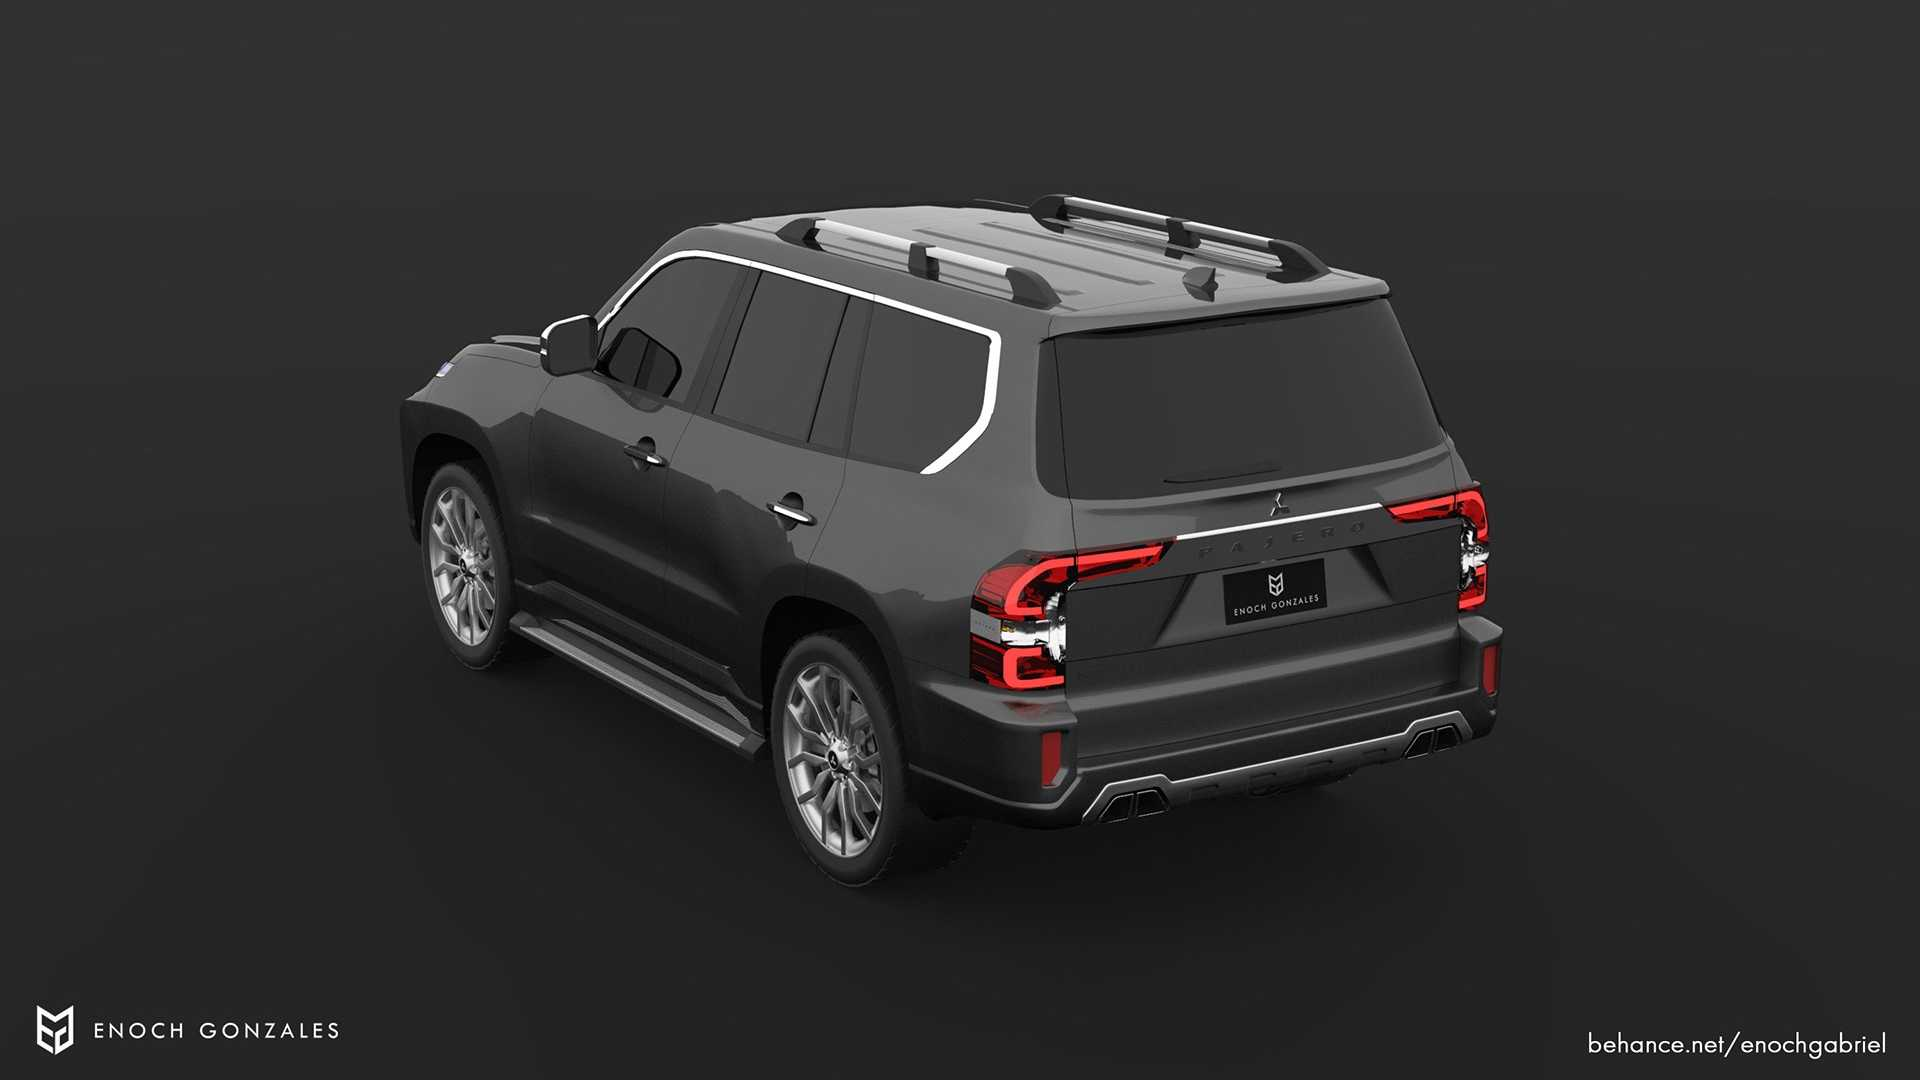 2021 mitsubishi pajero imaginedmotor1 reader  car